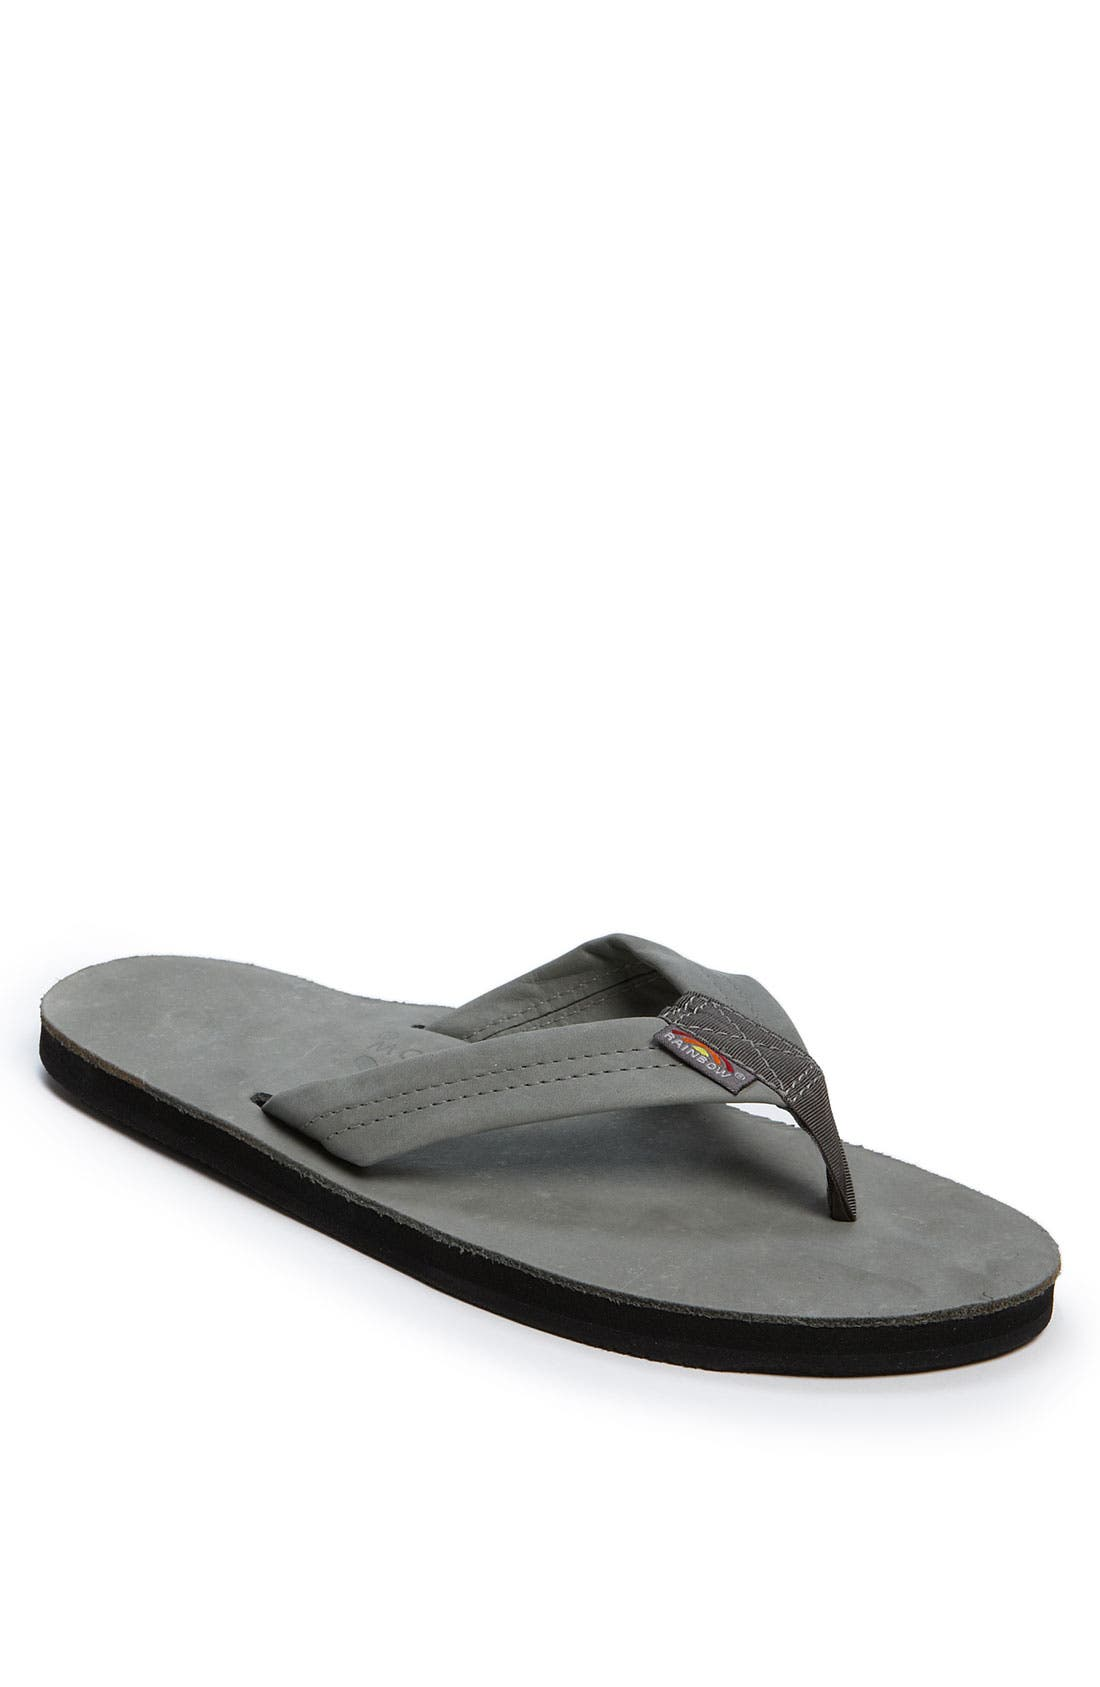 '301Alts' Sandal,                             Main thumbnail 1, color,                             Grey